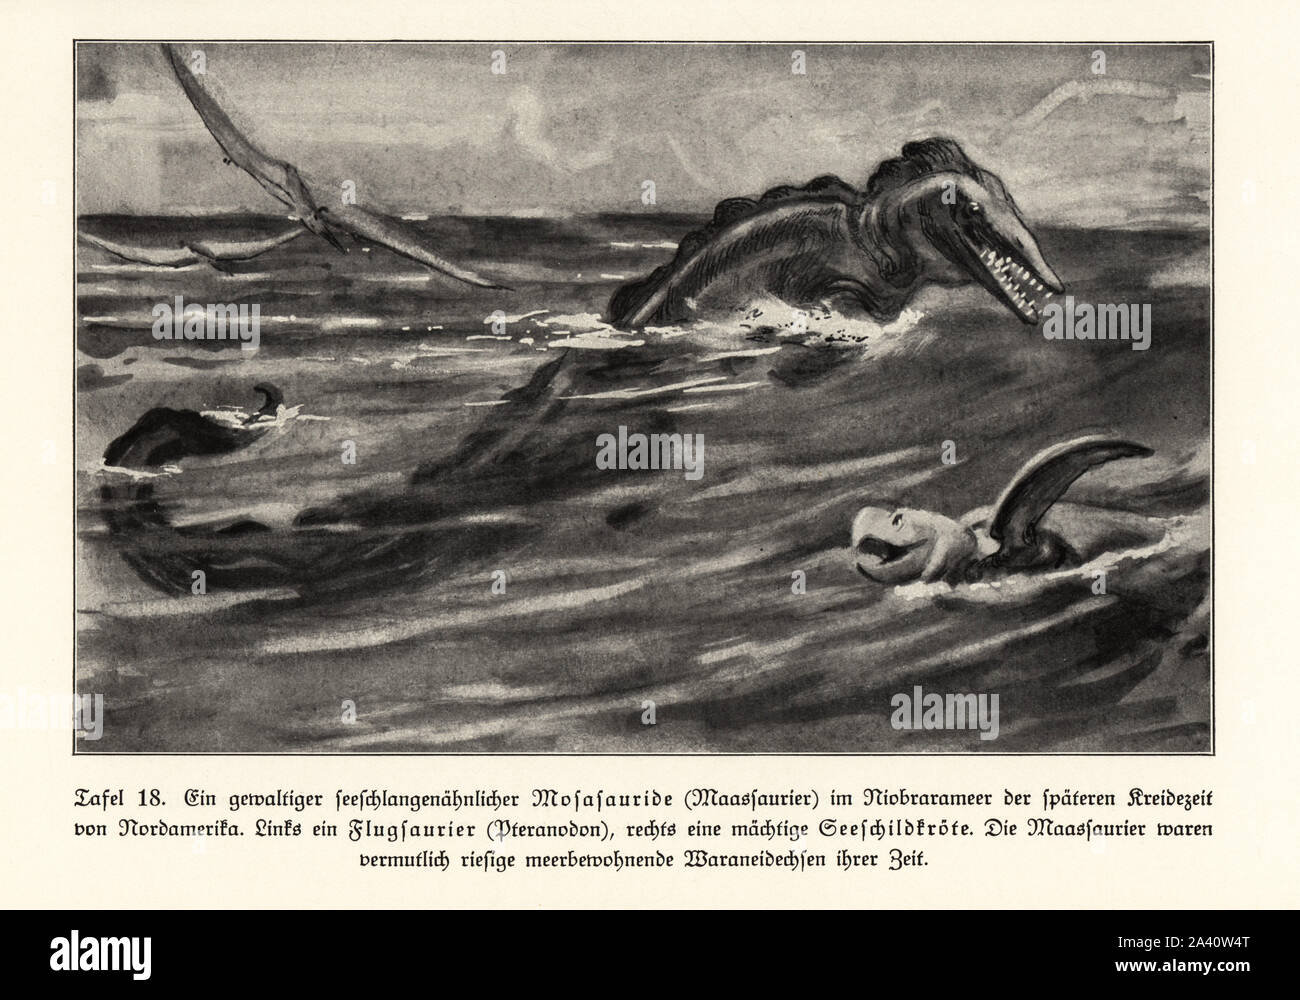 mosasaur high resolution stock photography and images alamy https www alamy com an extinct seasnake like mosasaur in the niobrara sea north america late cretaceous a pterosaur pteranodon at left and sea turtle at right mosasaurs were probably giant sea monitor lizards of their time illustration from wilhelm bolsches das leben der urwelt prehistoric life georg dollheimer leipzig 1932 image329475352 html